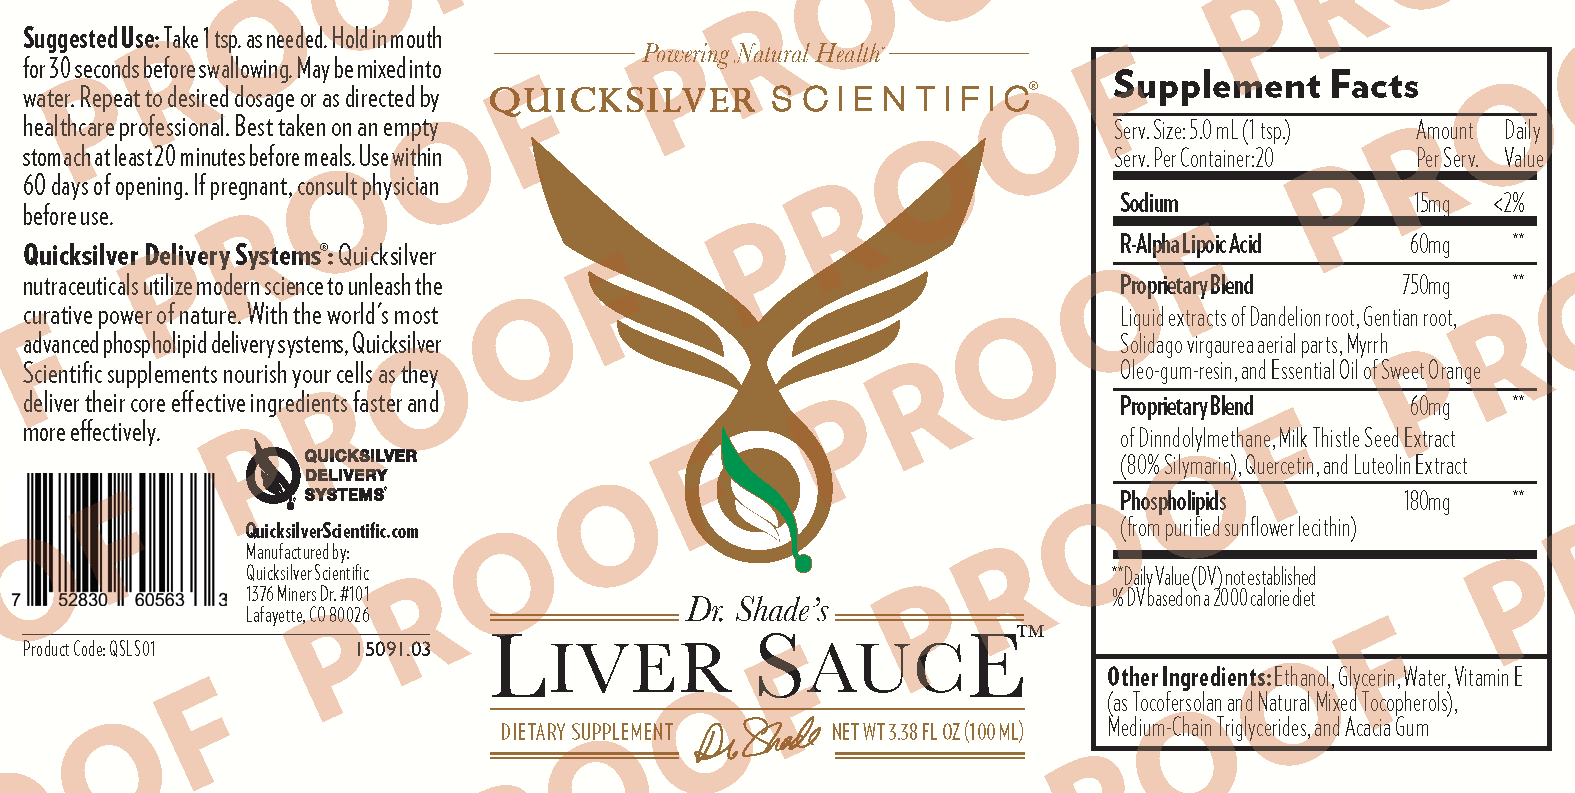 Liver Sauce 100ml Herbal Line 1509103 Liposomal Melatonin 1 oz